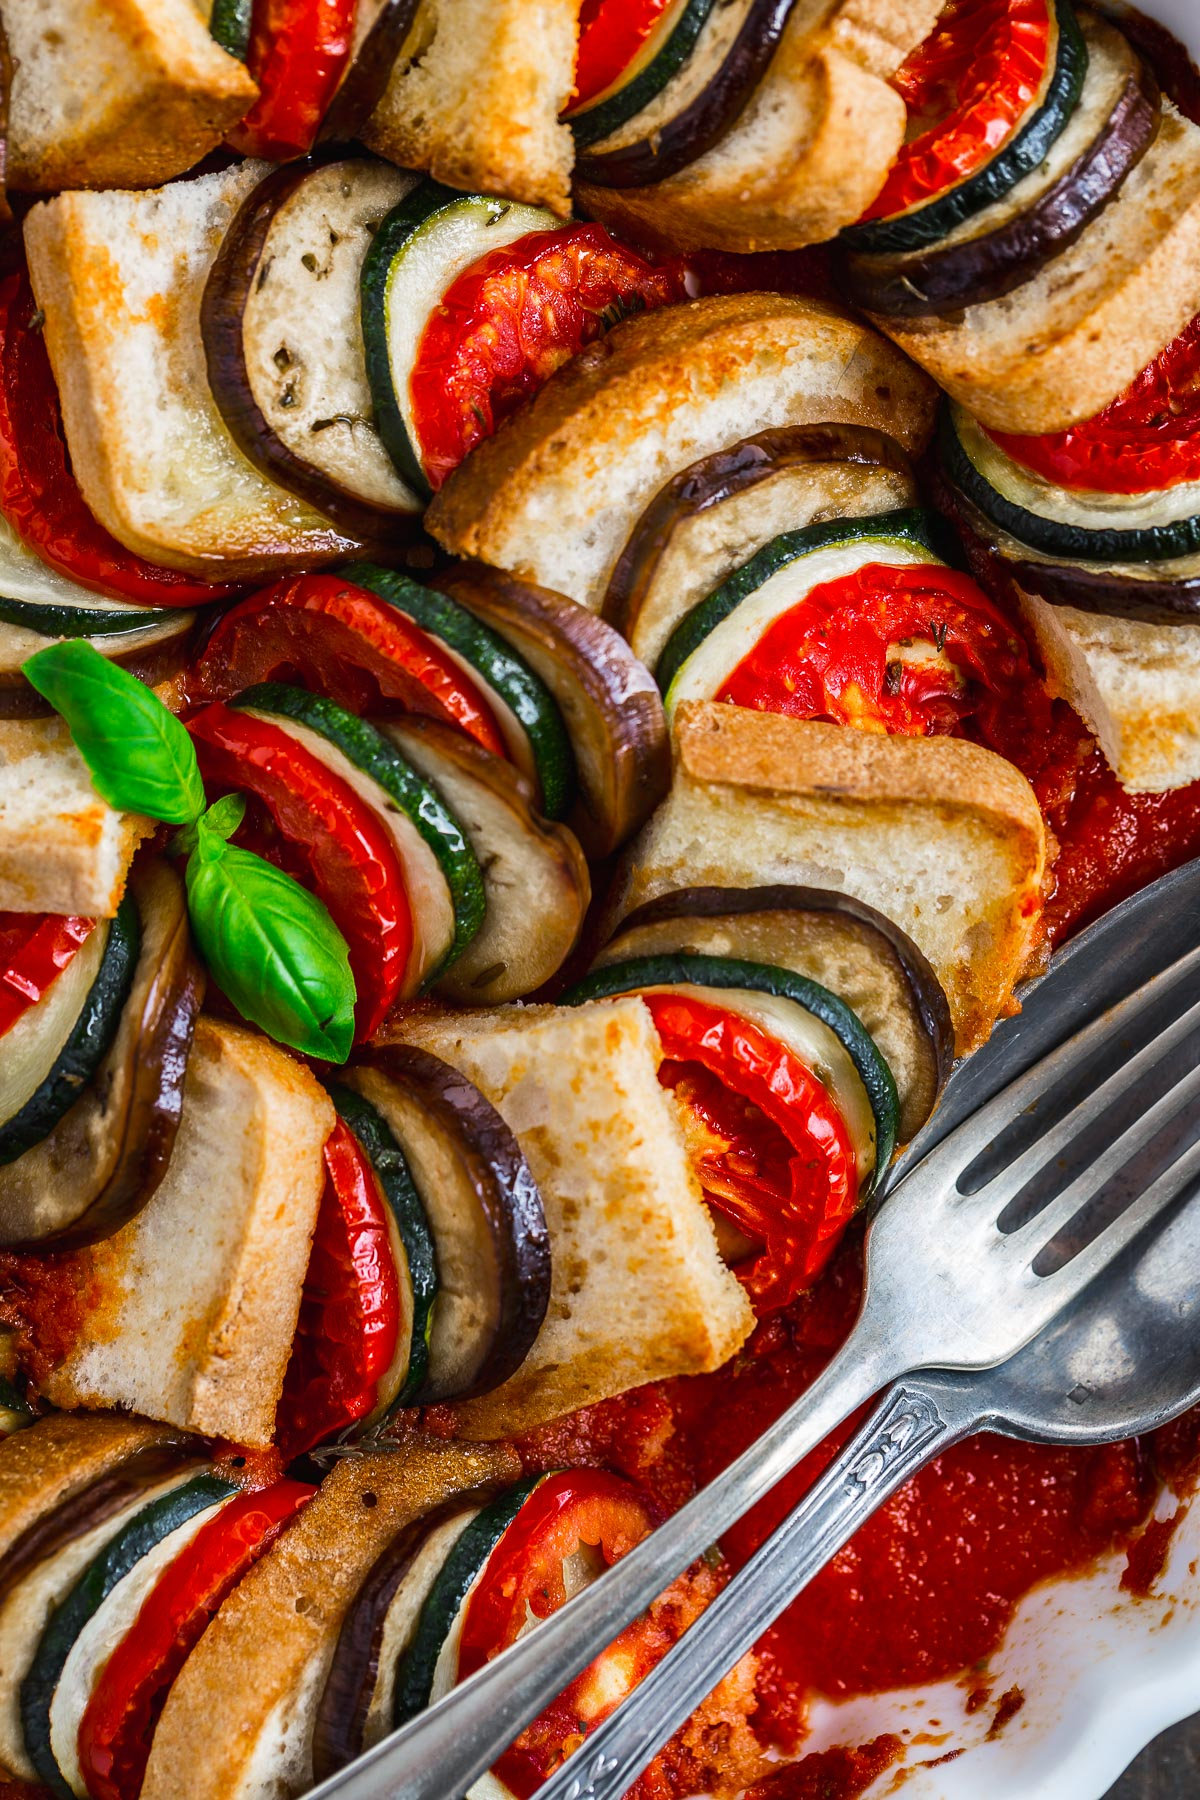 VEGETABLE BREAD RATATOUILLE TIAN recipe #vegan #glutenfree eggplant - TIAN RATATOUILLE di pane senza glutine e verdure